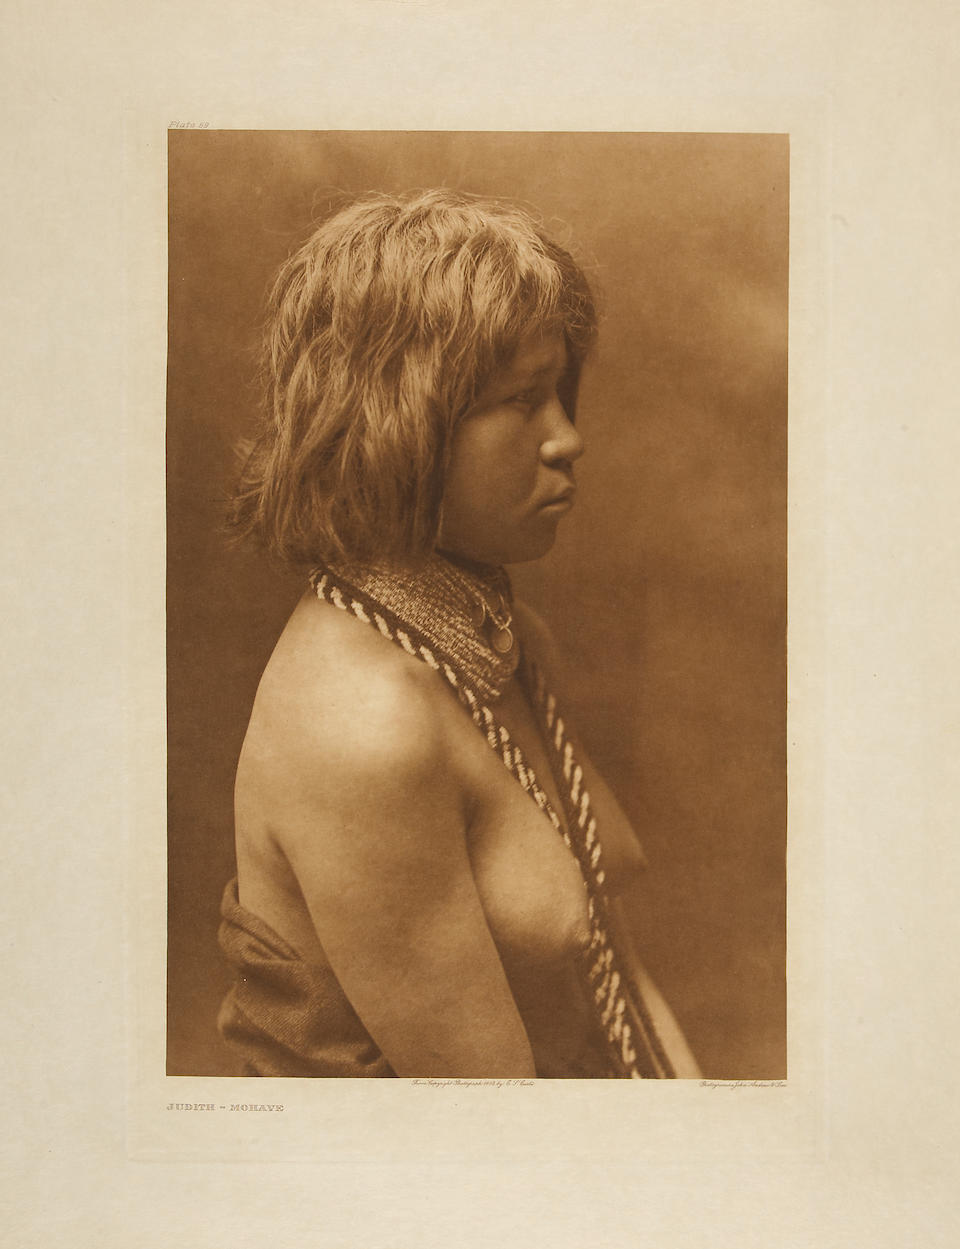 Edward S. Curtis (American, 1868-1952); Selected Images, from The North American Indian;